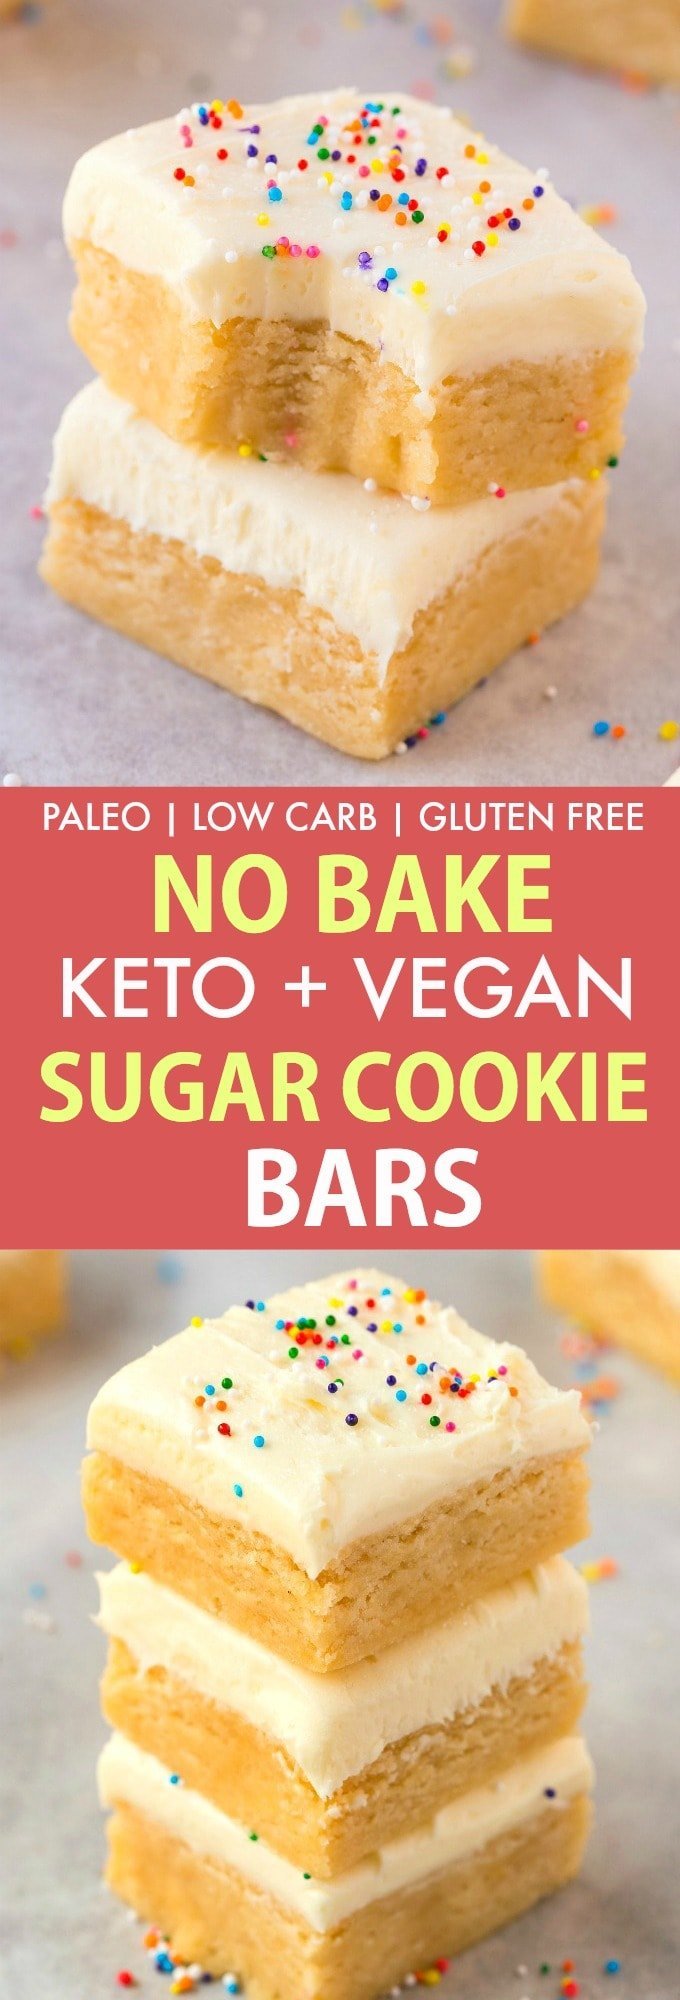 Healthy No Bake Paleo Vegan Sugar Cookie Bars- Perfect for Christmas, Thanksgiving and the holidays, this keto and low carb dessert is SO easy and takes minutes! #thanksgiving #christmasrecipe #sugarcookie #nobake #ketodessert #vegandessert #holidaybaking